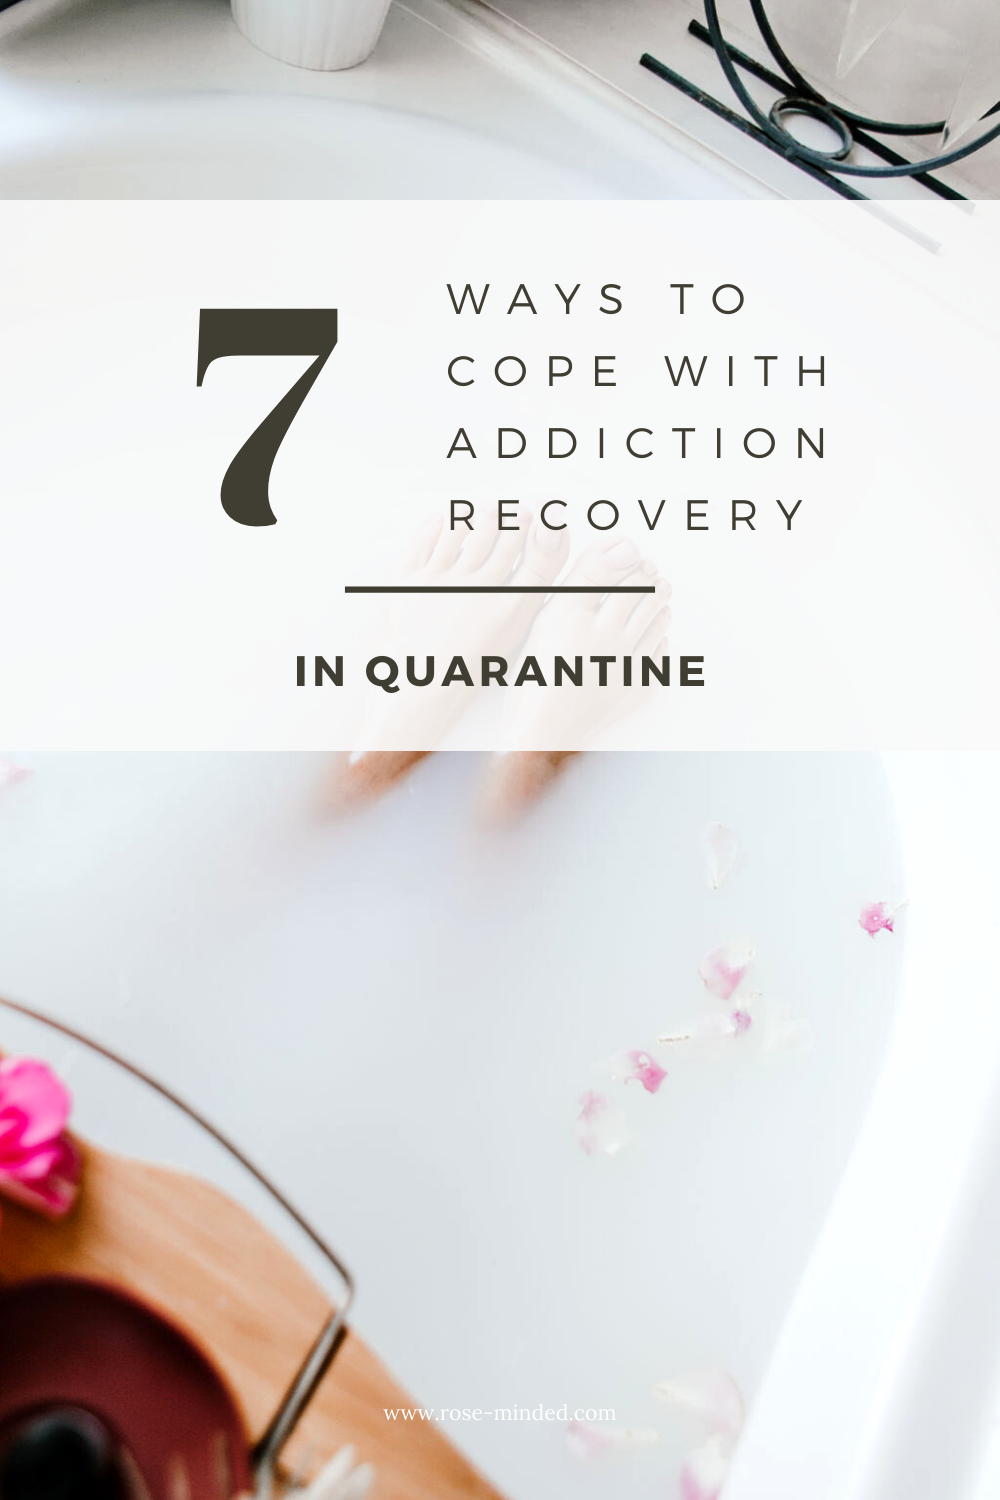 tips to cope with addiction in quarantine